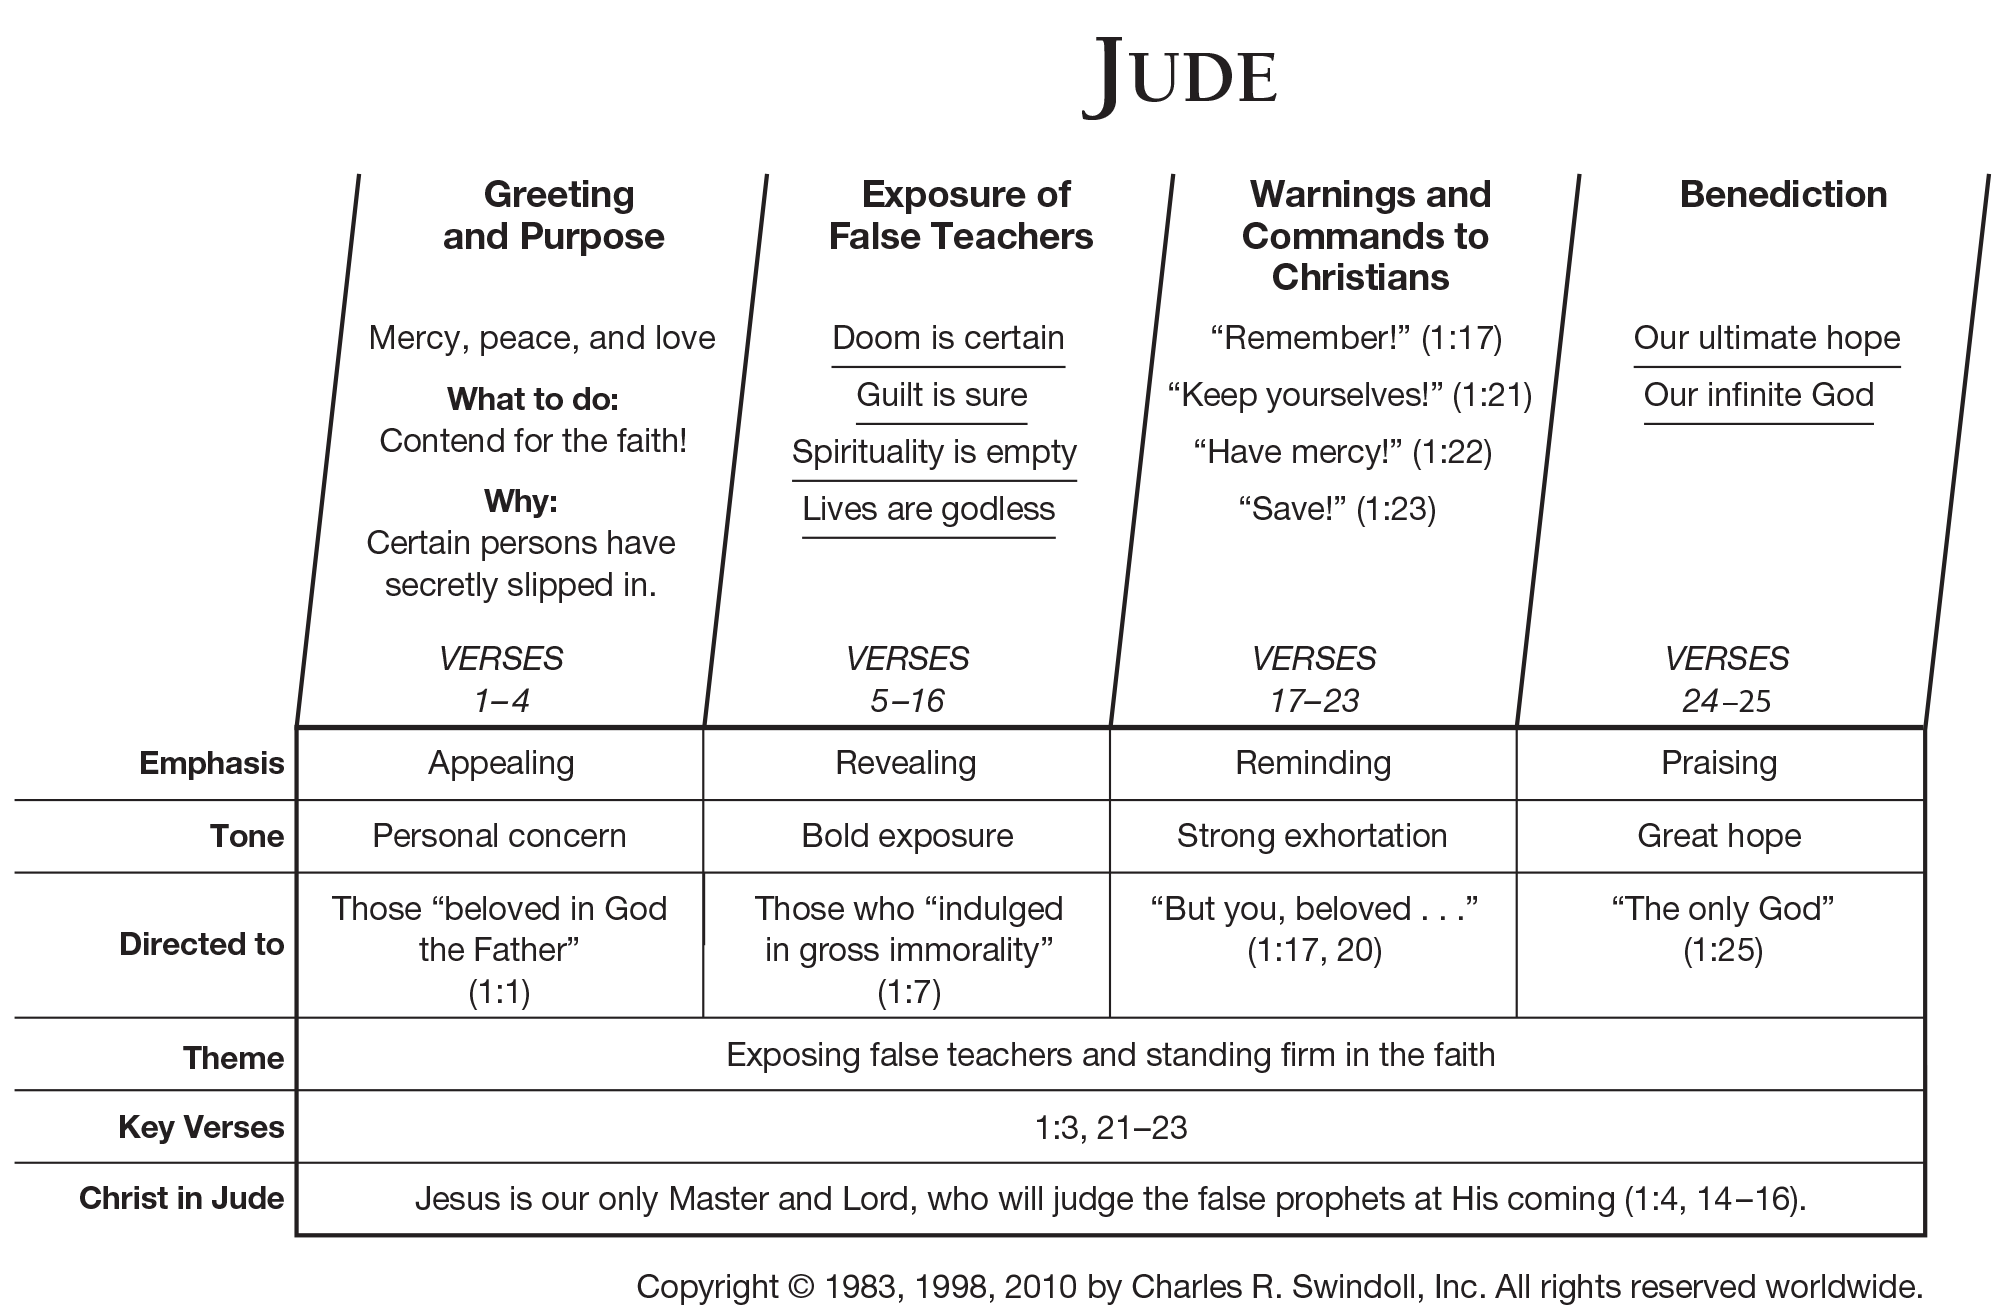 Book of Jude Overview - Insight for Living Ministries